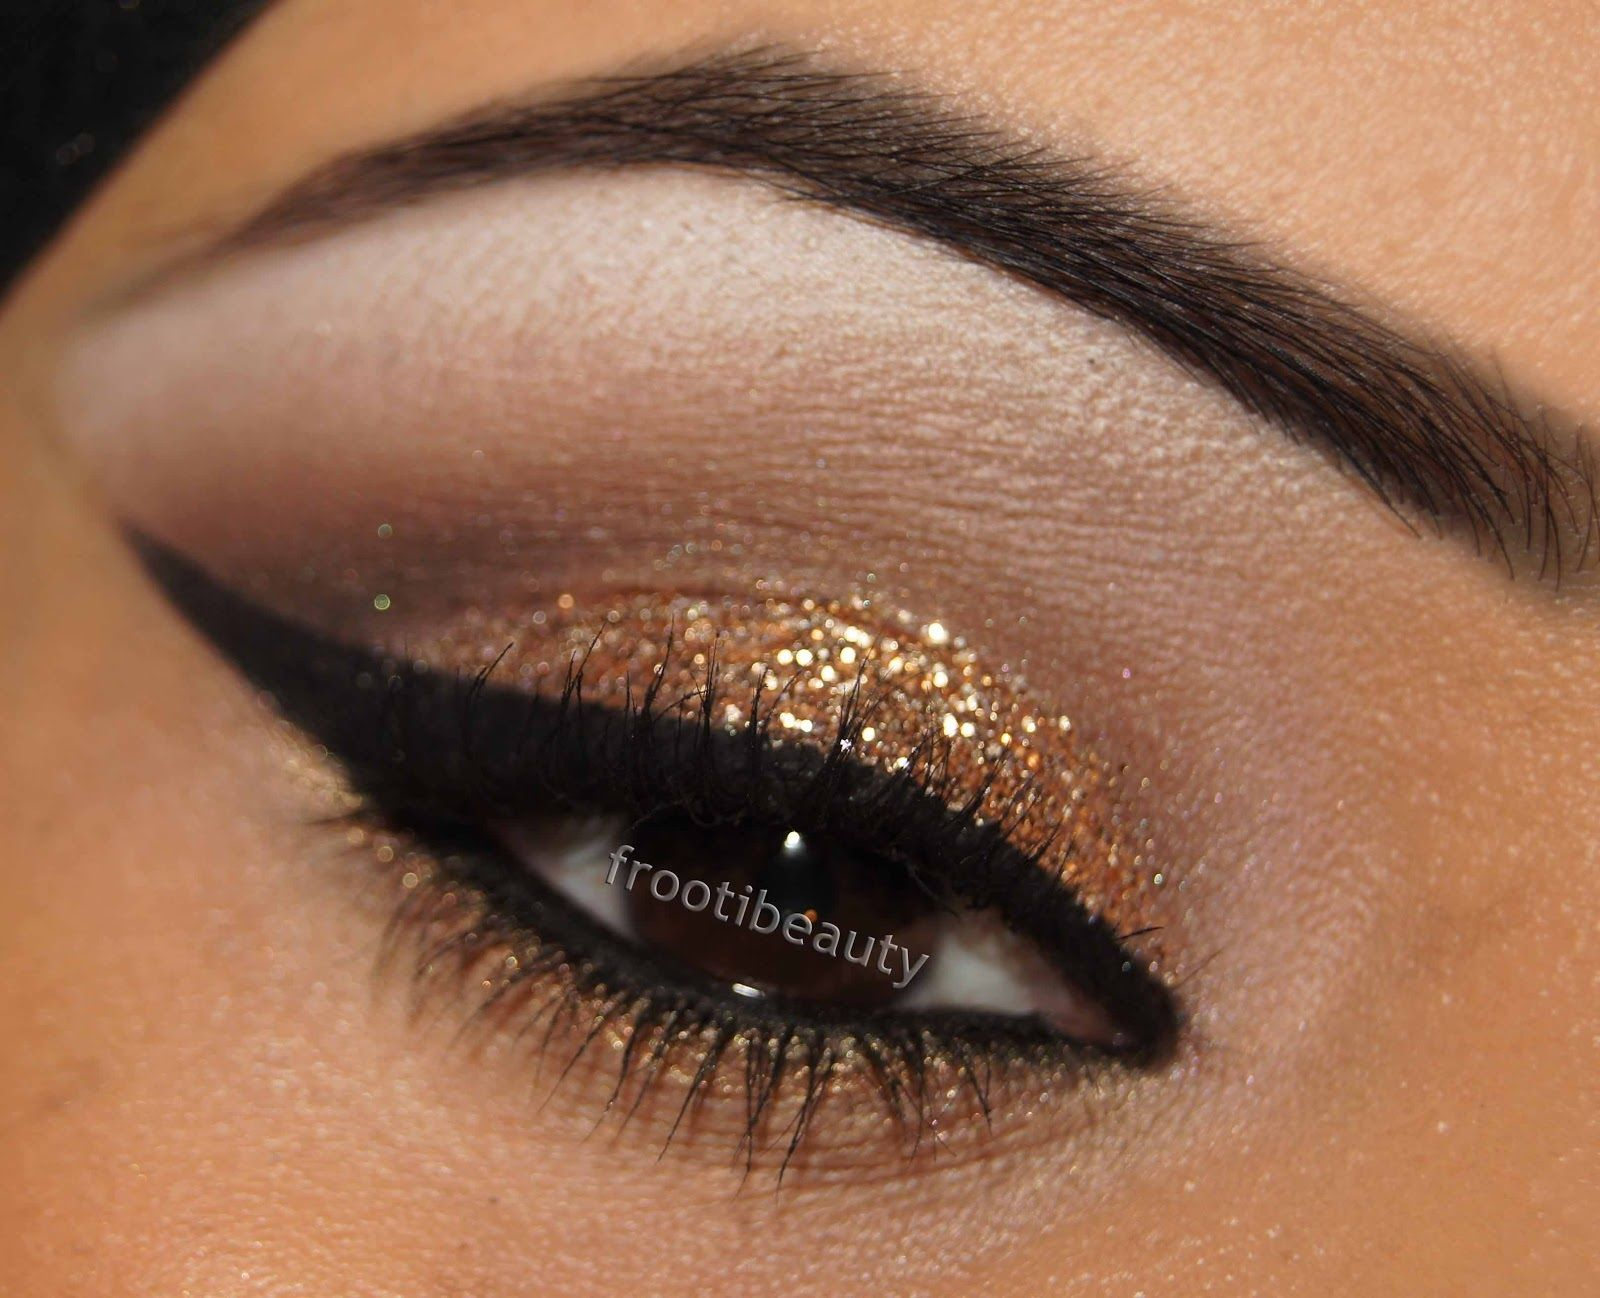 Find This Pin And More On My Fav Homecoming Styles!!! Frootibeauty: Gold Glitter  Makeup Look